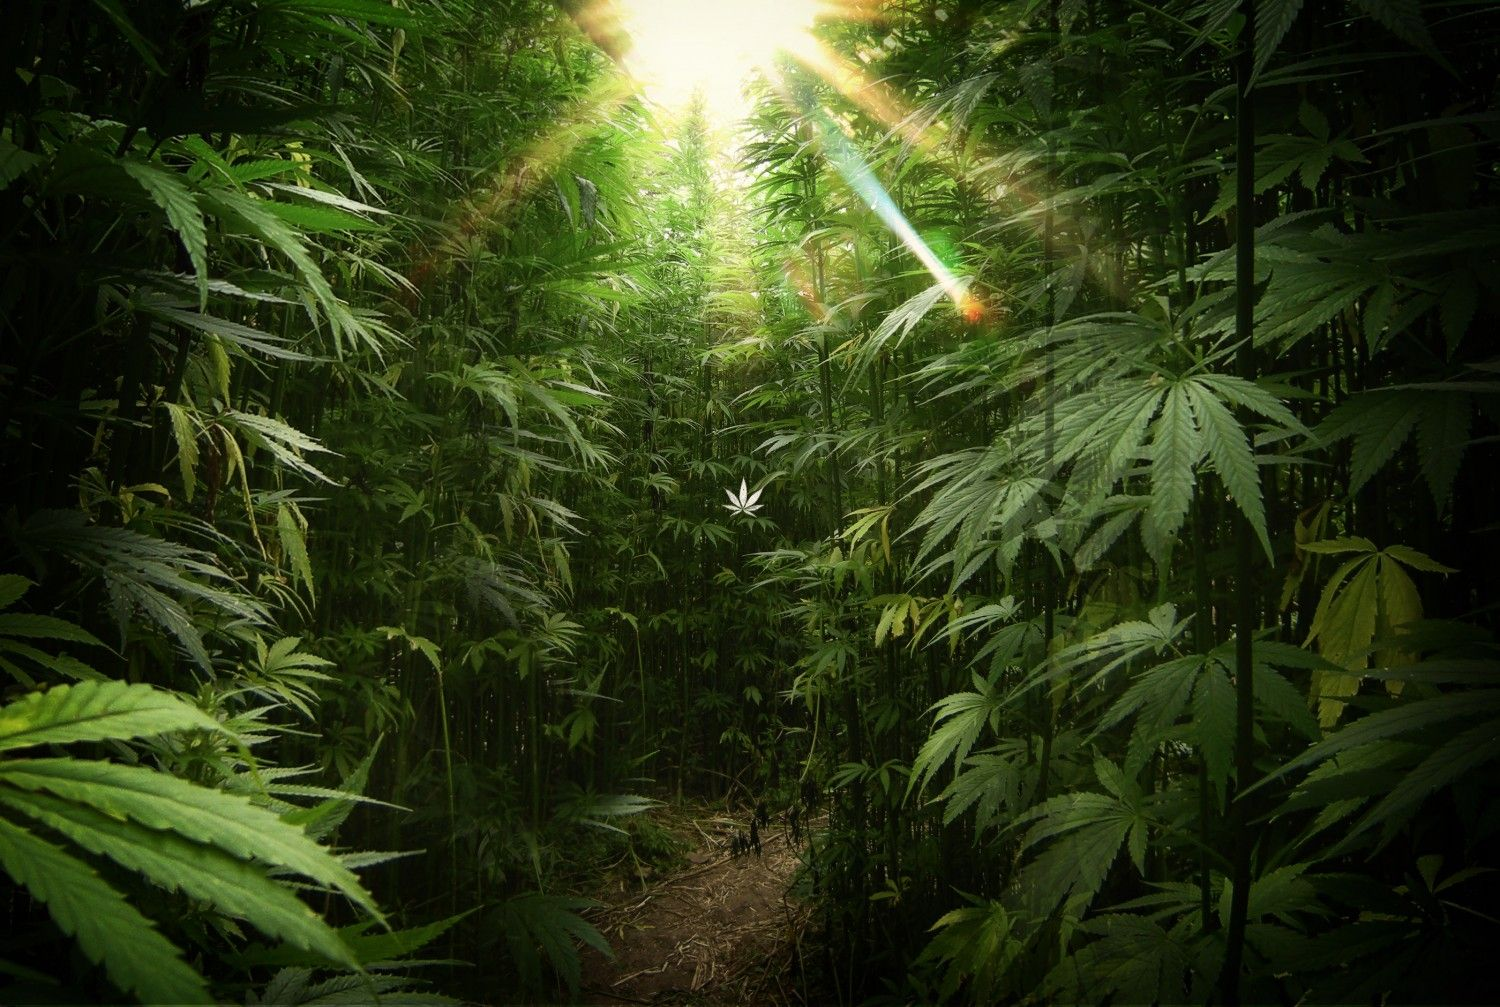 Live Weed Wallpapers 420   The Best HD Weed Wallpaper Backgrounds   many high times   Pinterest ...